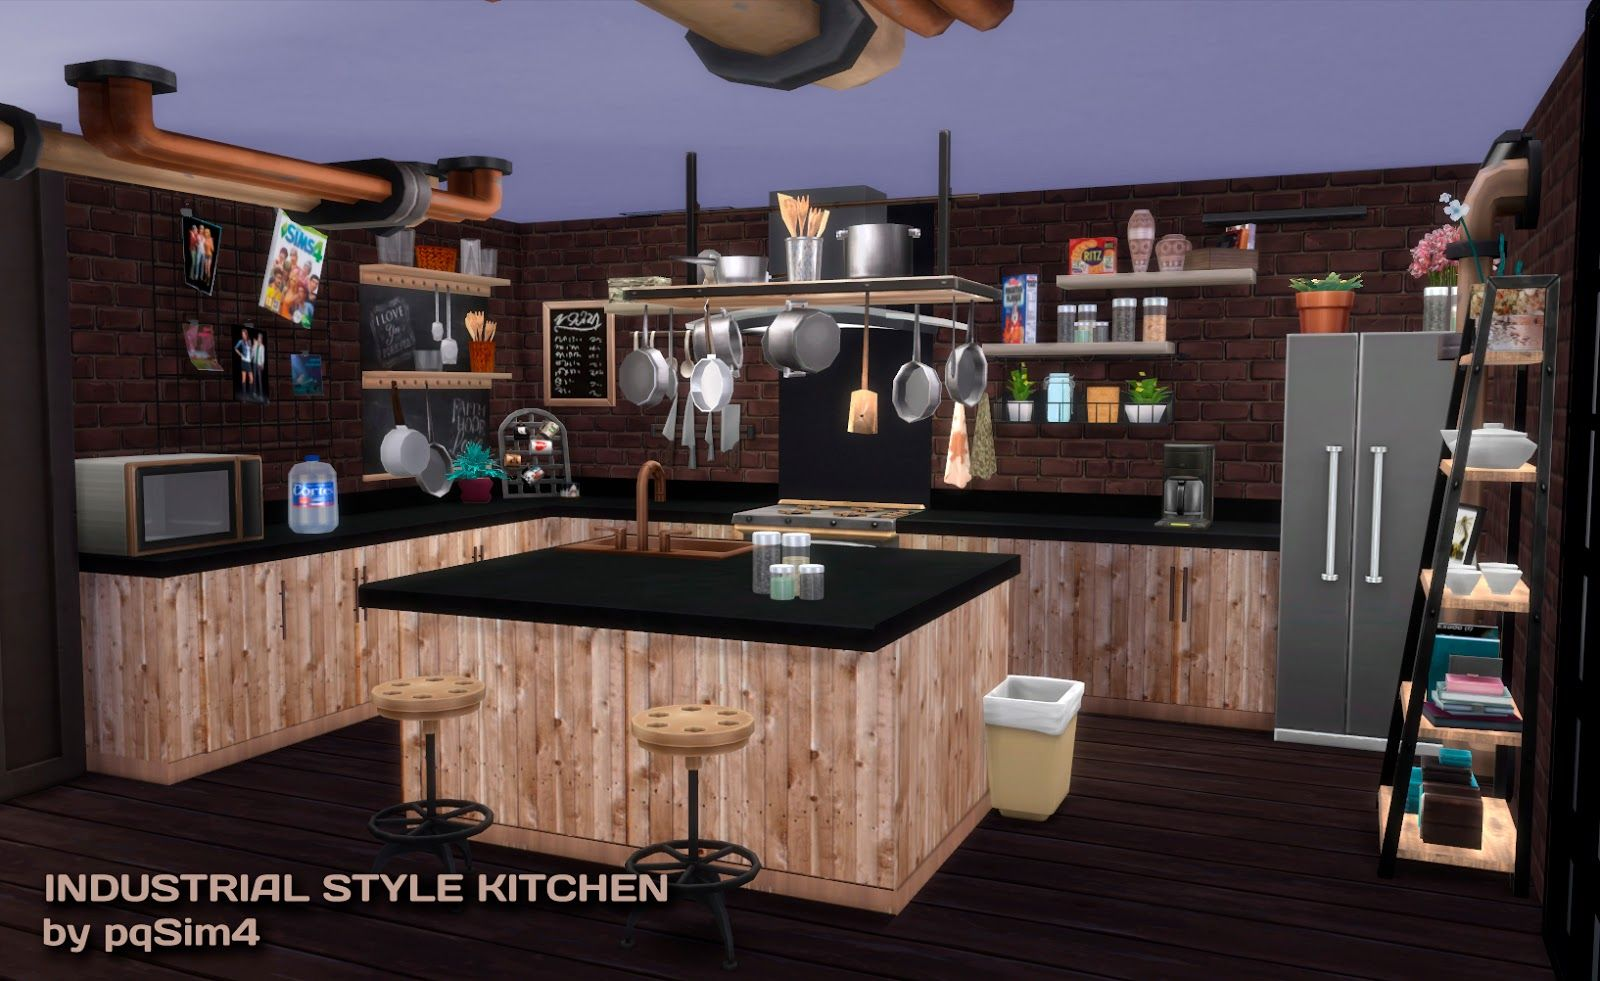 Sims Kitchen Pin By Nappily Dee On Sims4hood Pinterest Industrial Style